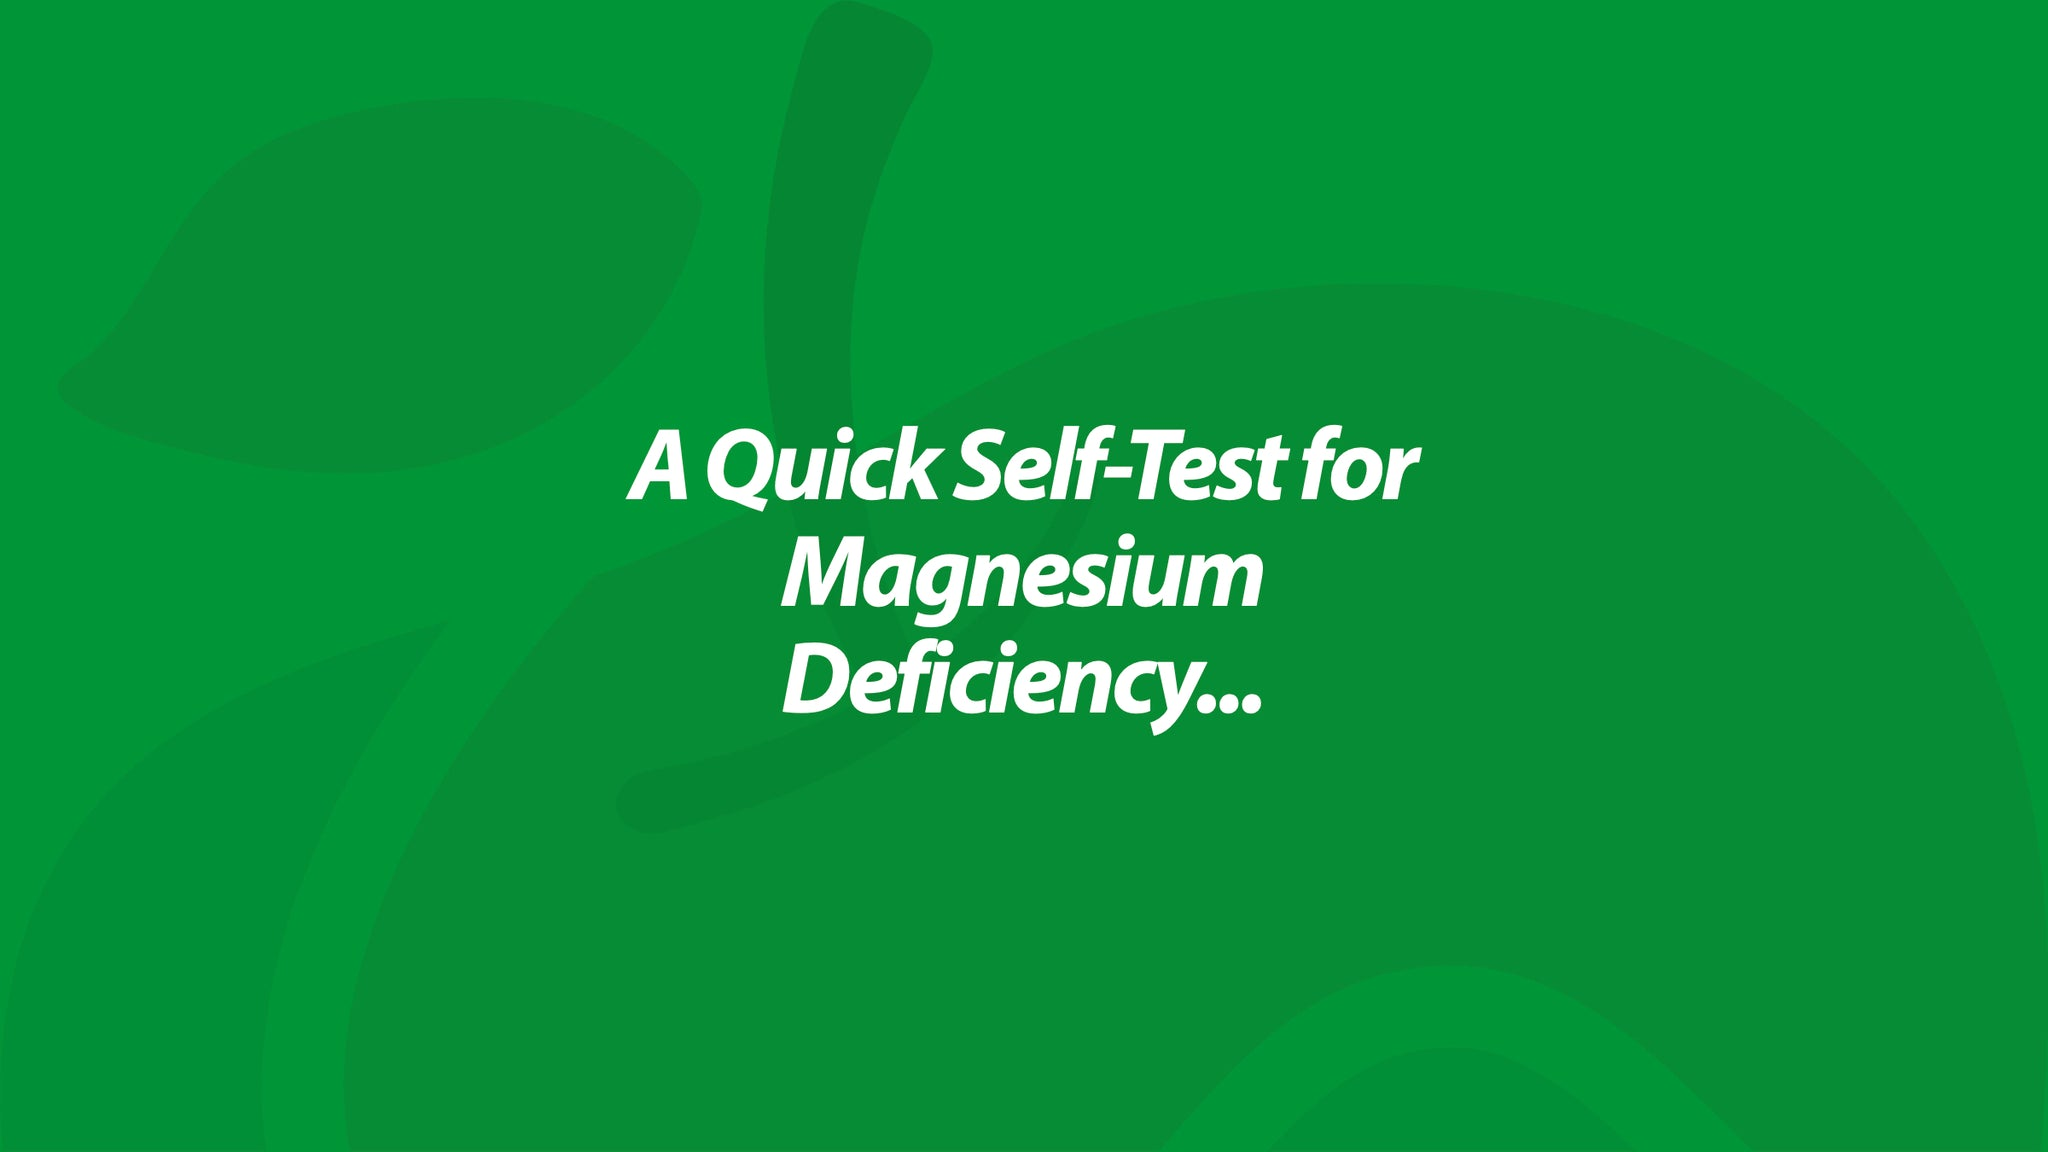 A Quick Self-Test for Magnesium Deficiency...